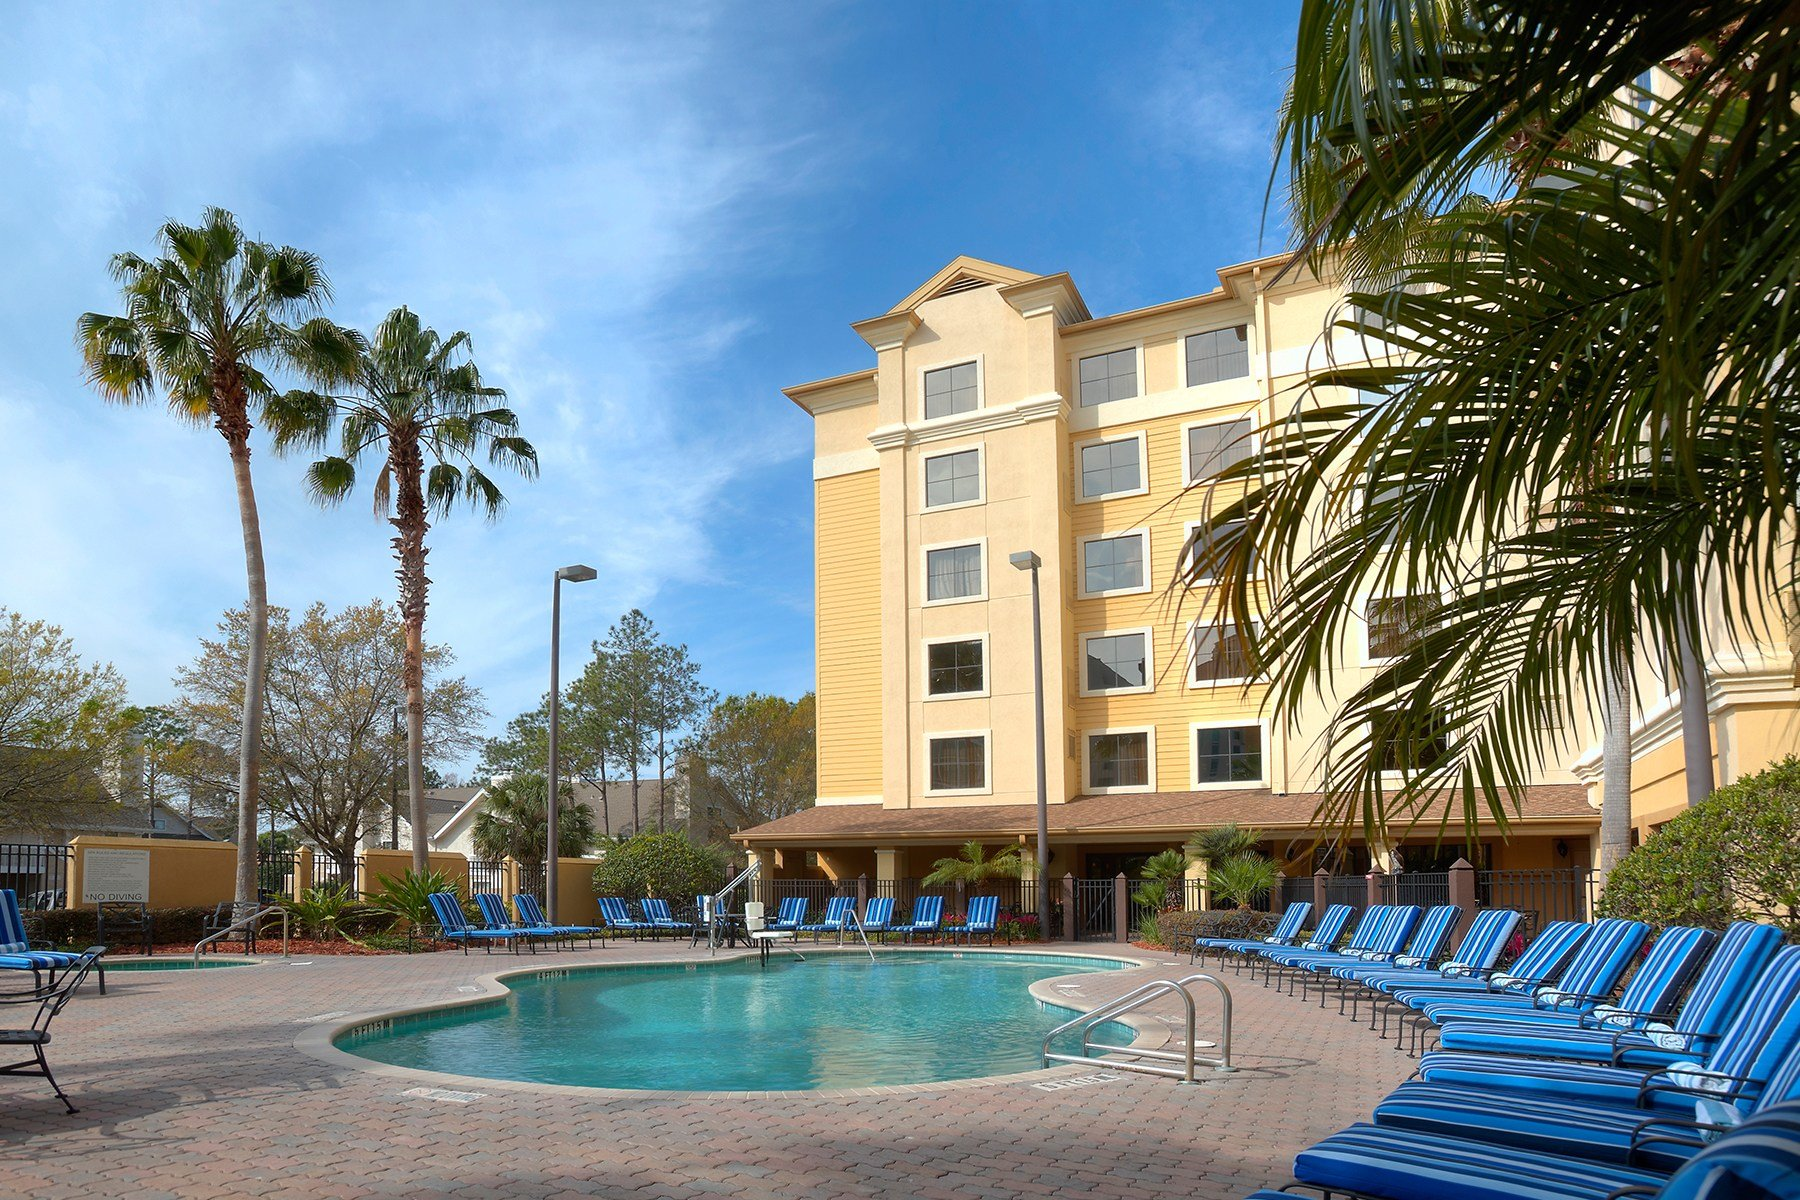 best 2 bedroom suites in orlando on international drive with pictures - october 2020 177171606